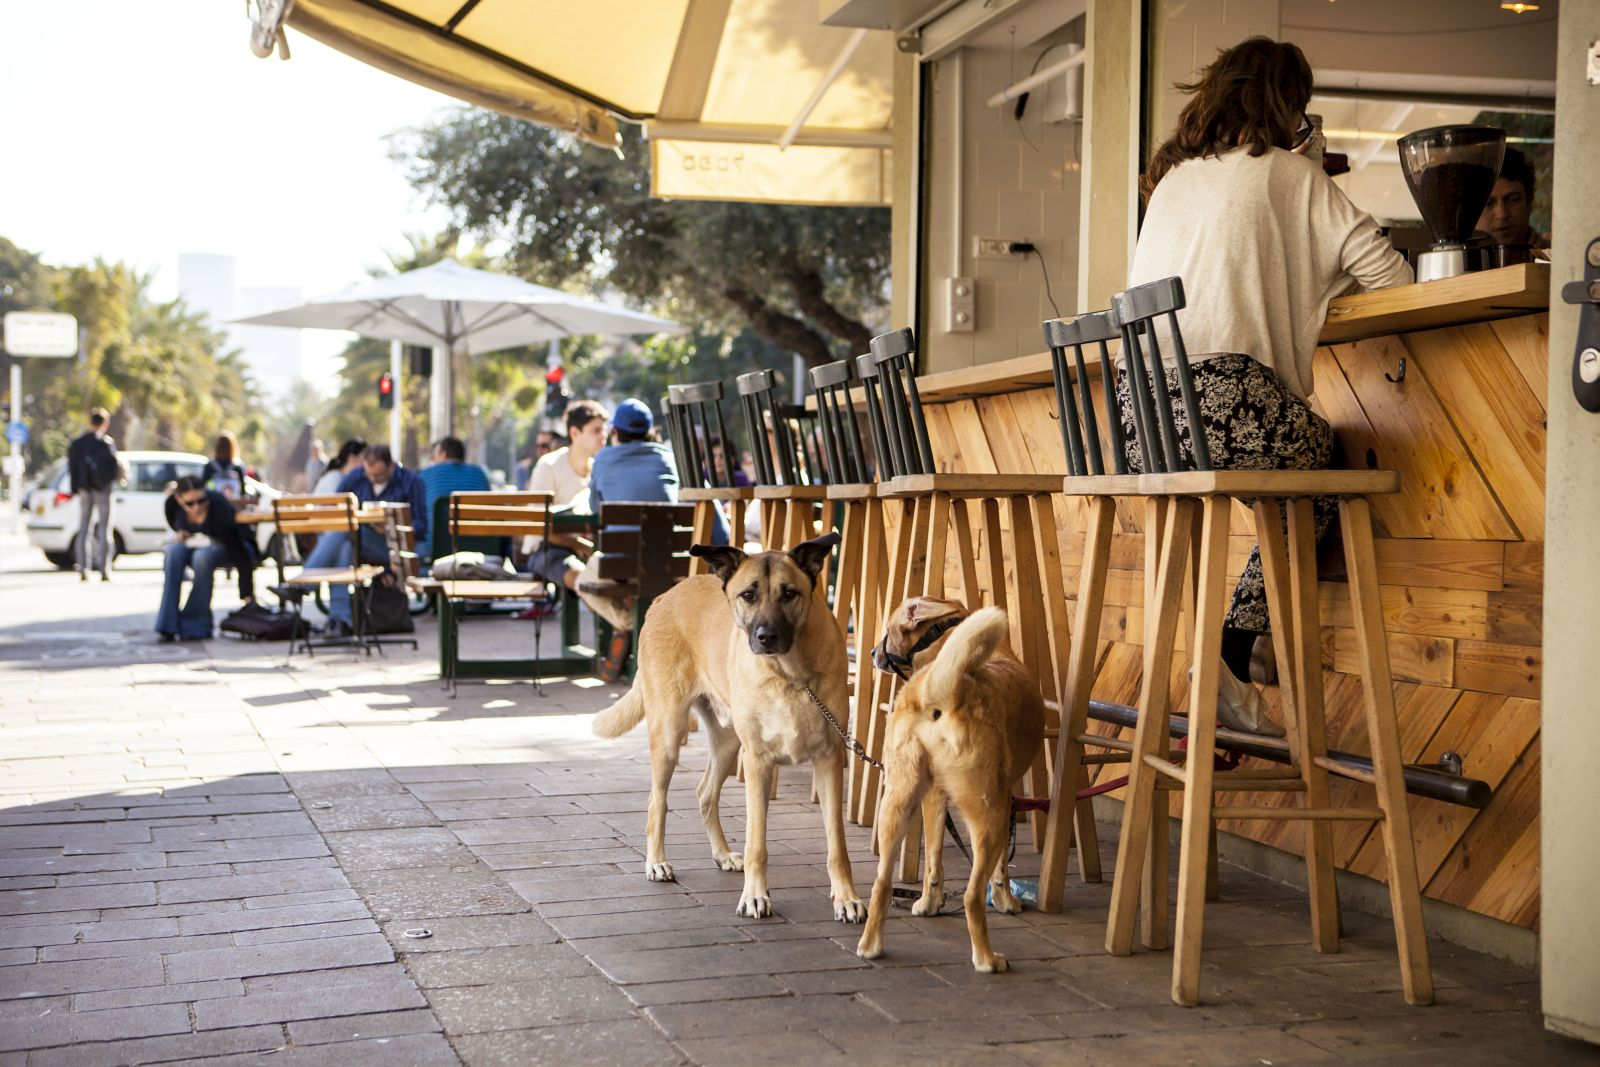 Many Tel Aviv residents own more than one dog. Photo by Kfir Sivan